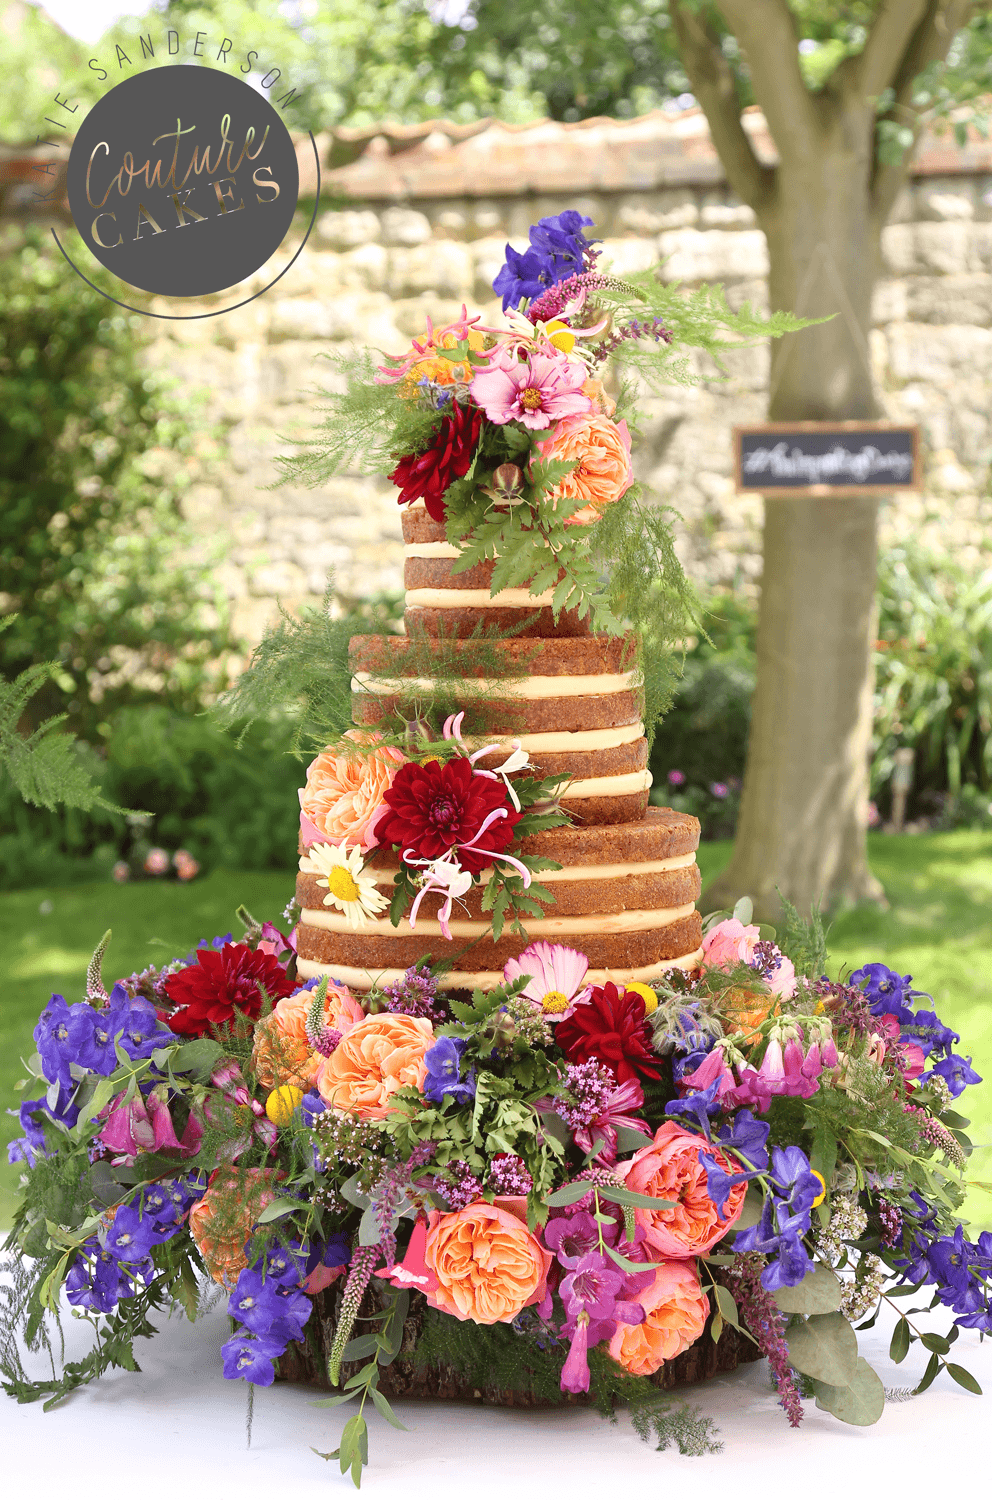 Naked Cake serves 110 portions, Price £335 plus £150 bed of flowers